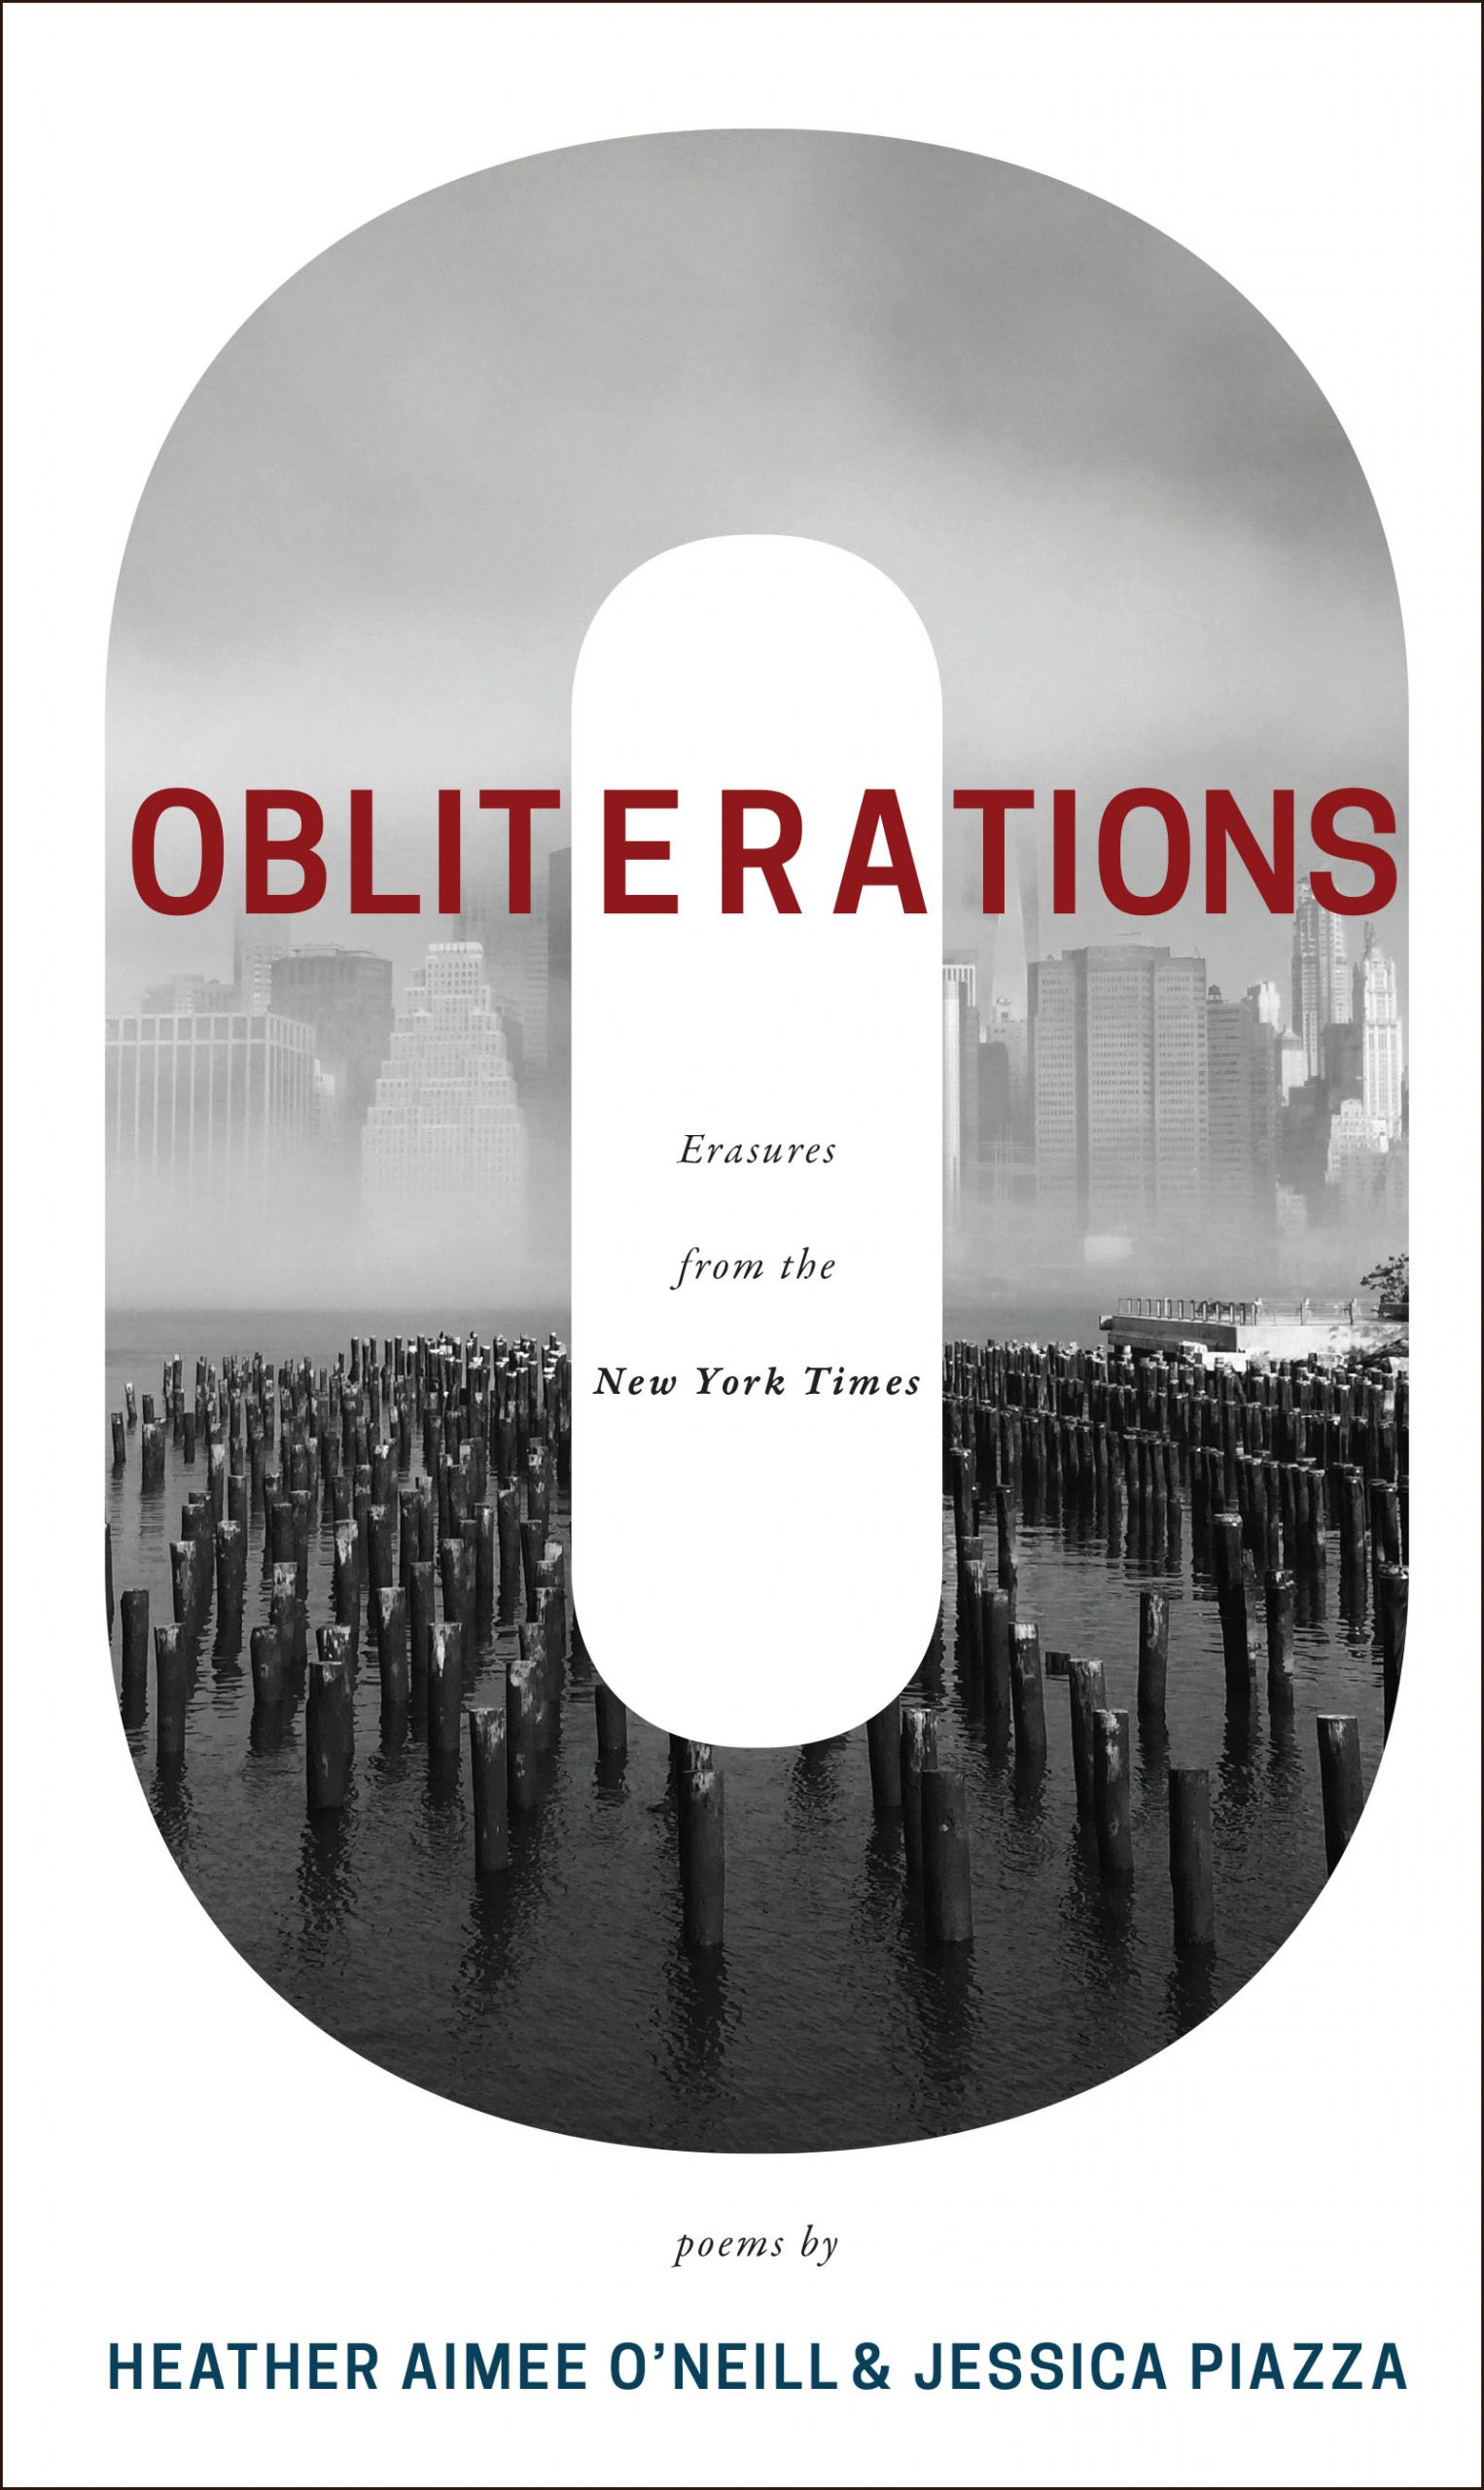 """A large letter 0 with a black and white image of a skyline and water, red text over the O with red text reading """"Obliterations,"""" black script in the middle of the O reads """"Erasures from the New York Times,"""" text at the bottom reads """"poems by Heather Aimee O'Neill & Jessica Piazza"""